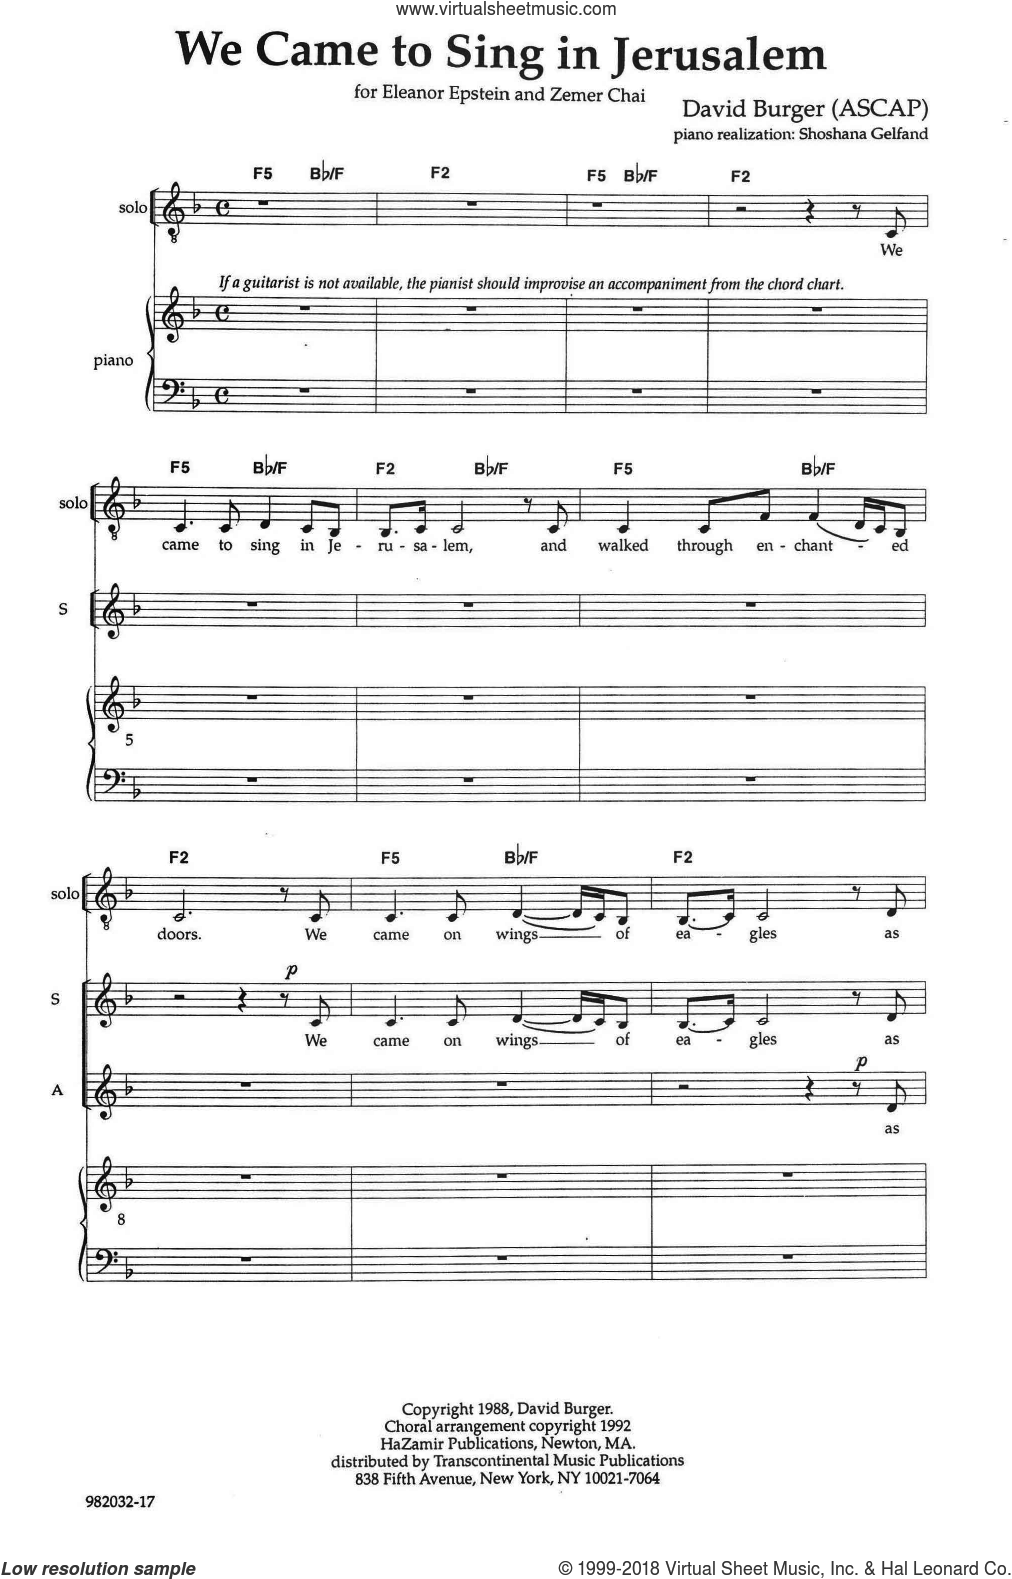 We Came To Sing In Jerusalem sheet music for choir (SATB: soprano, alto, tenor, bass) by David Burger, intermediate skill level